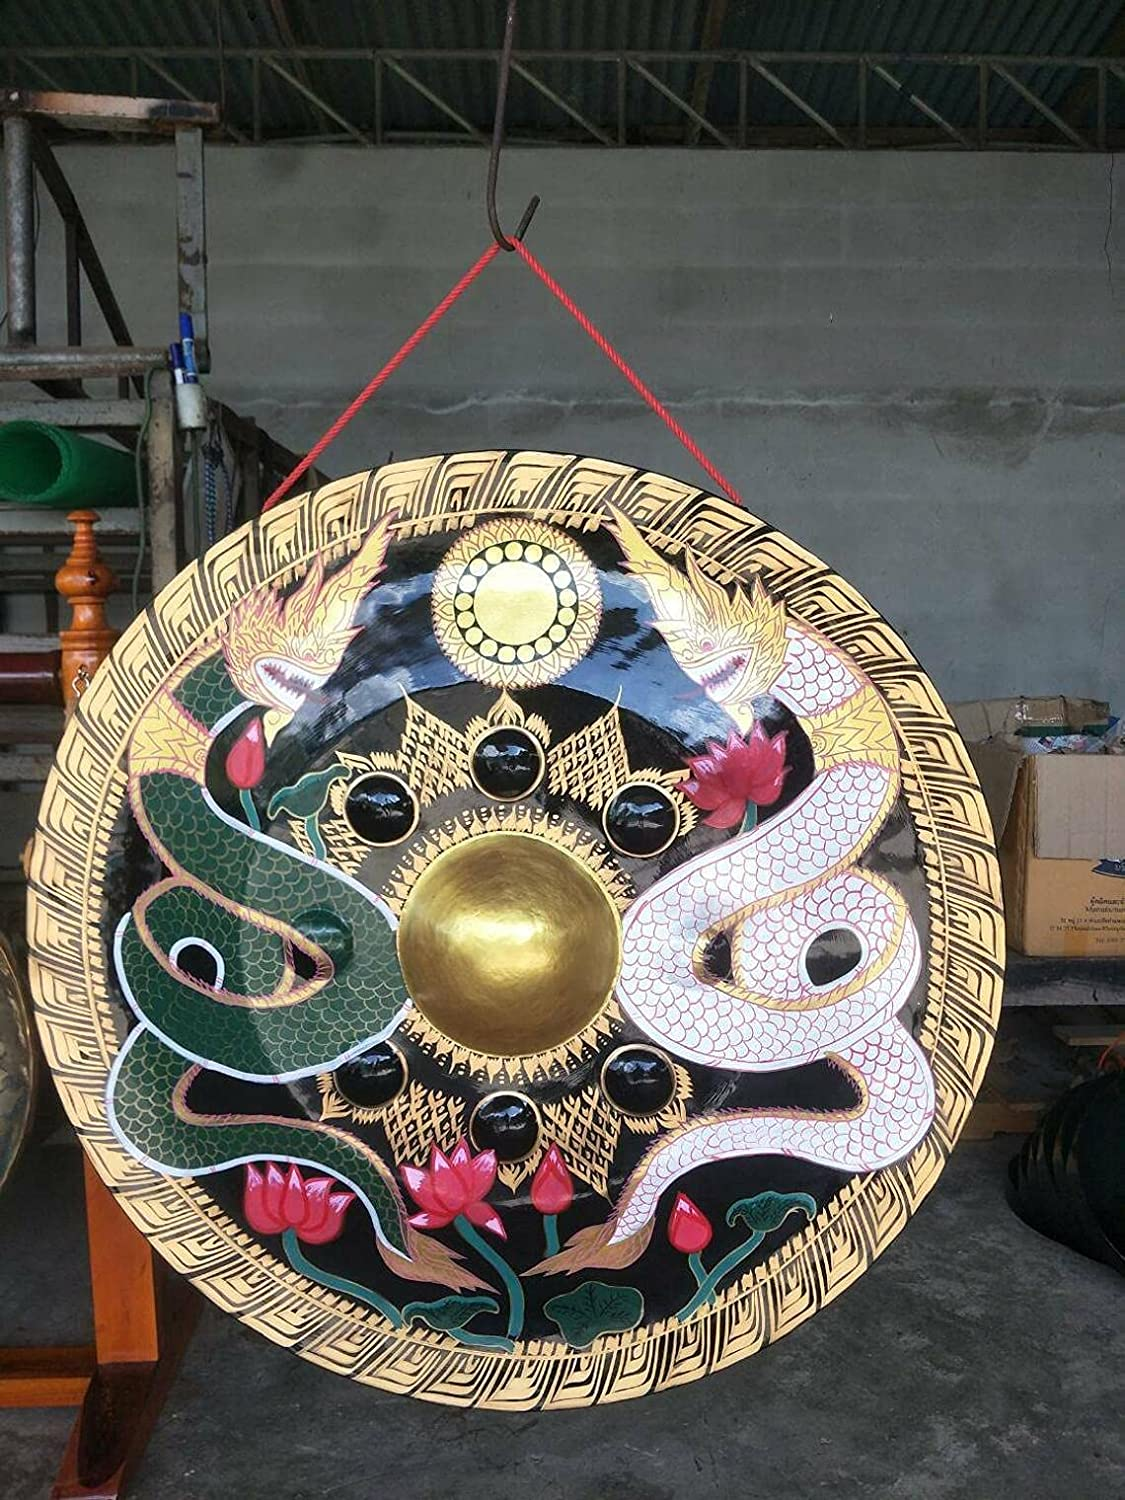 5 popular Hand Crafted 40 Inch Thai Gong Deep Meditation Courier shipping free shipping for Relaxatio and